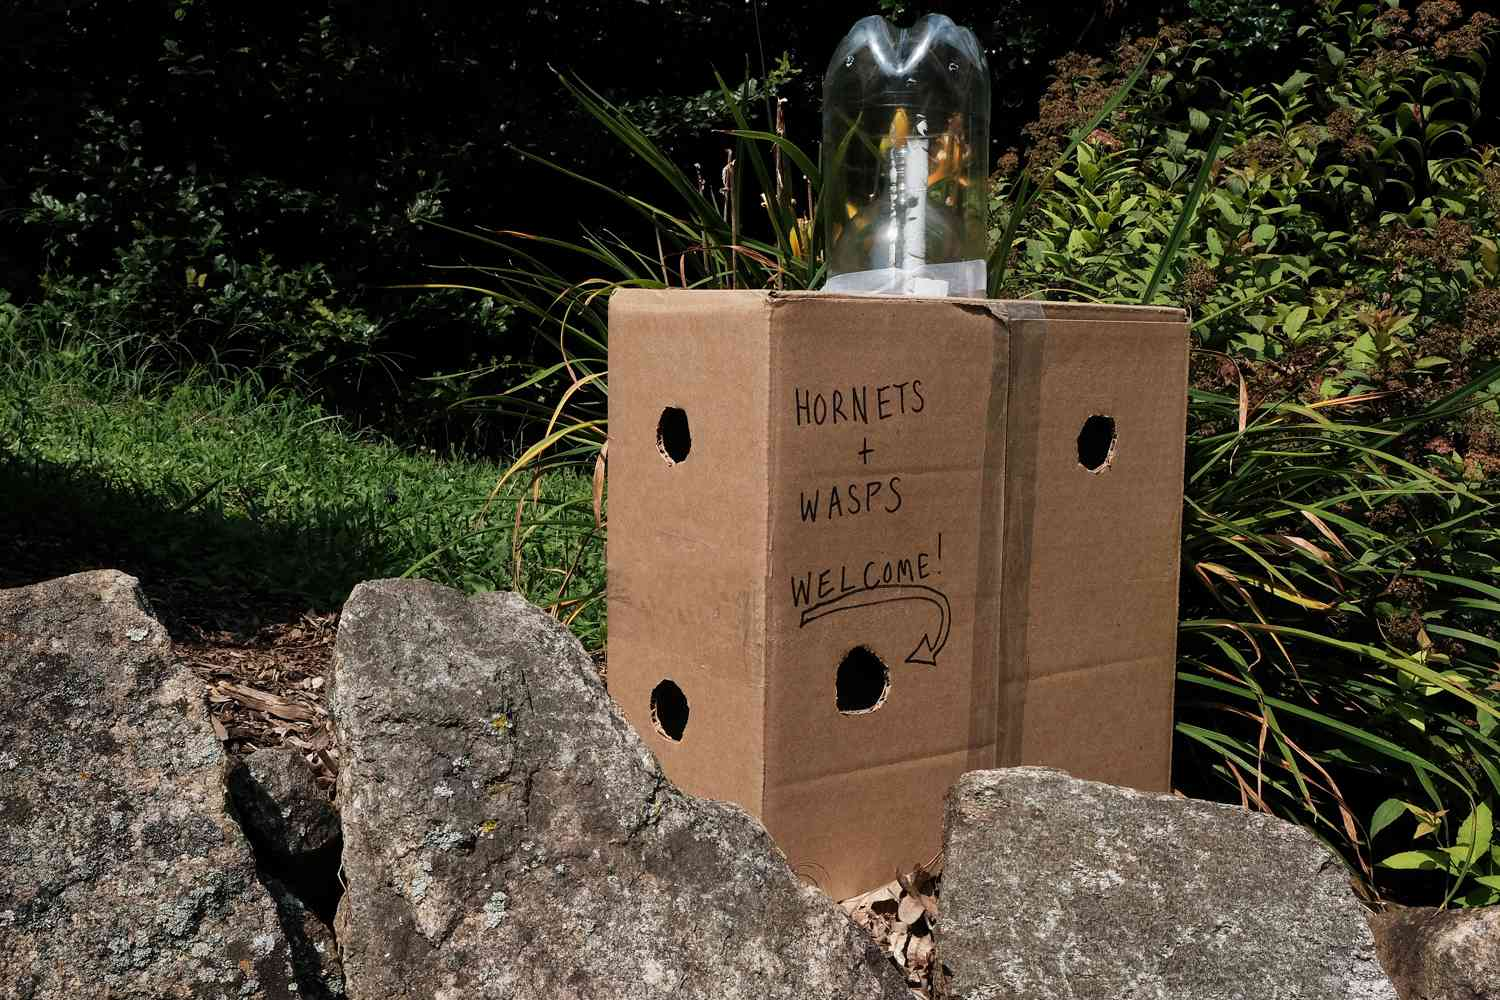 a homemade DIY wasp and hornet trap made out of old soda bottles and cardboard boxes